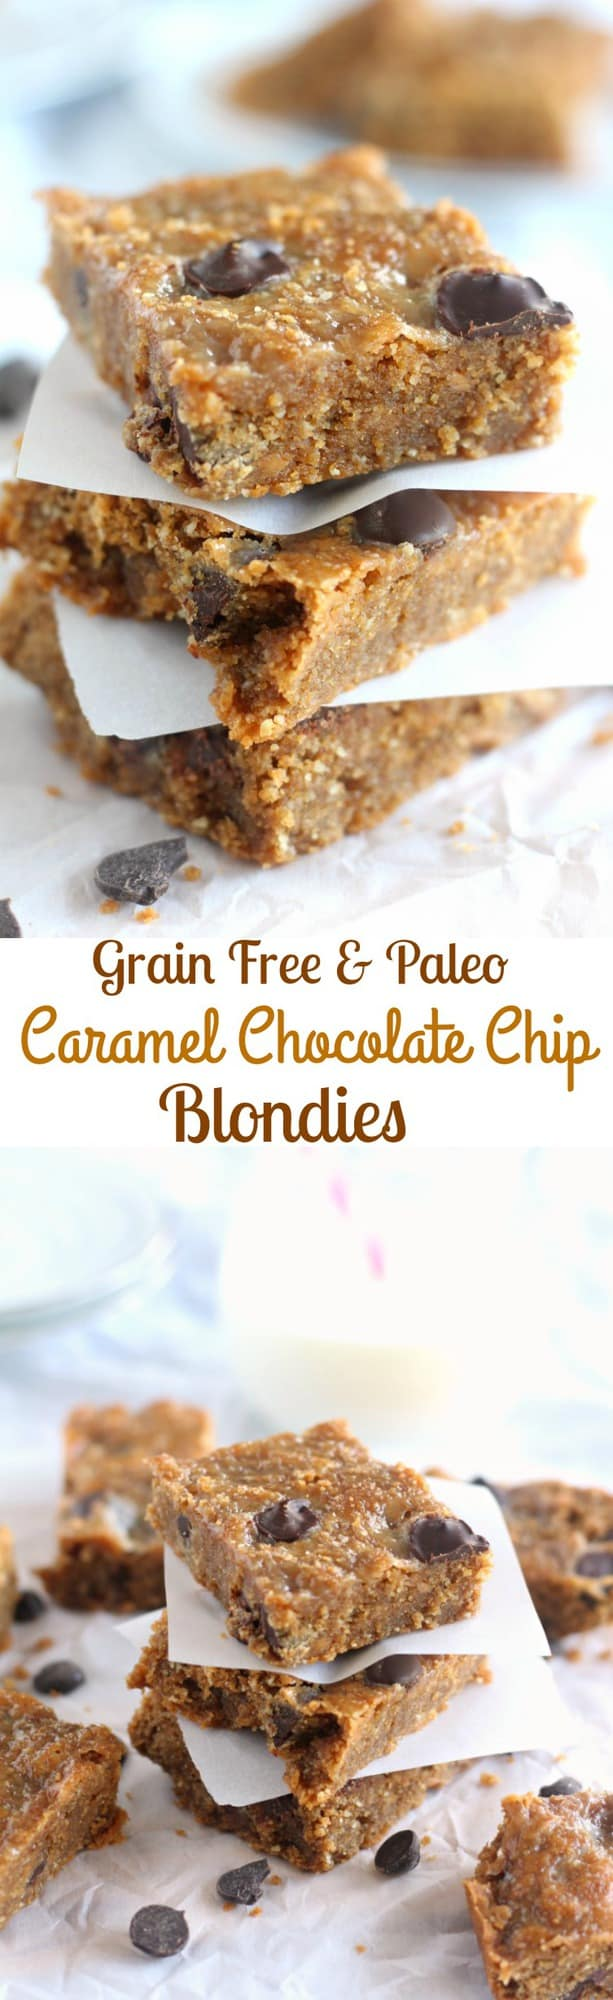 Grain Free And Paleo Caramel Chocolate Chip Blondies - Dairy free caramel is swirled into chocolate chip blondie batter for a rich yet healthy dessert!